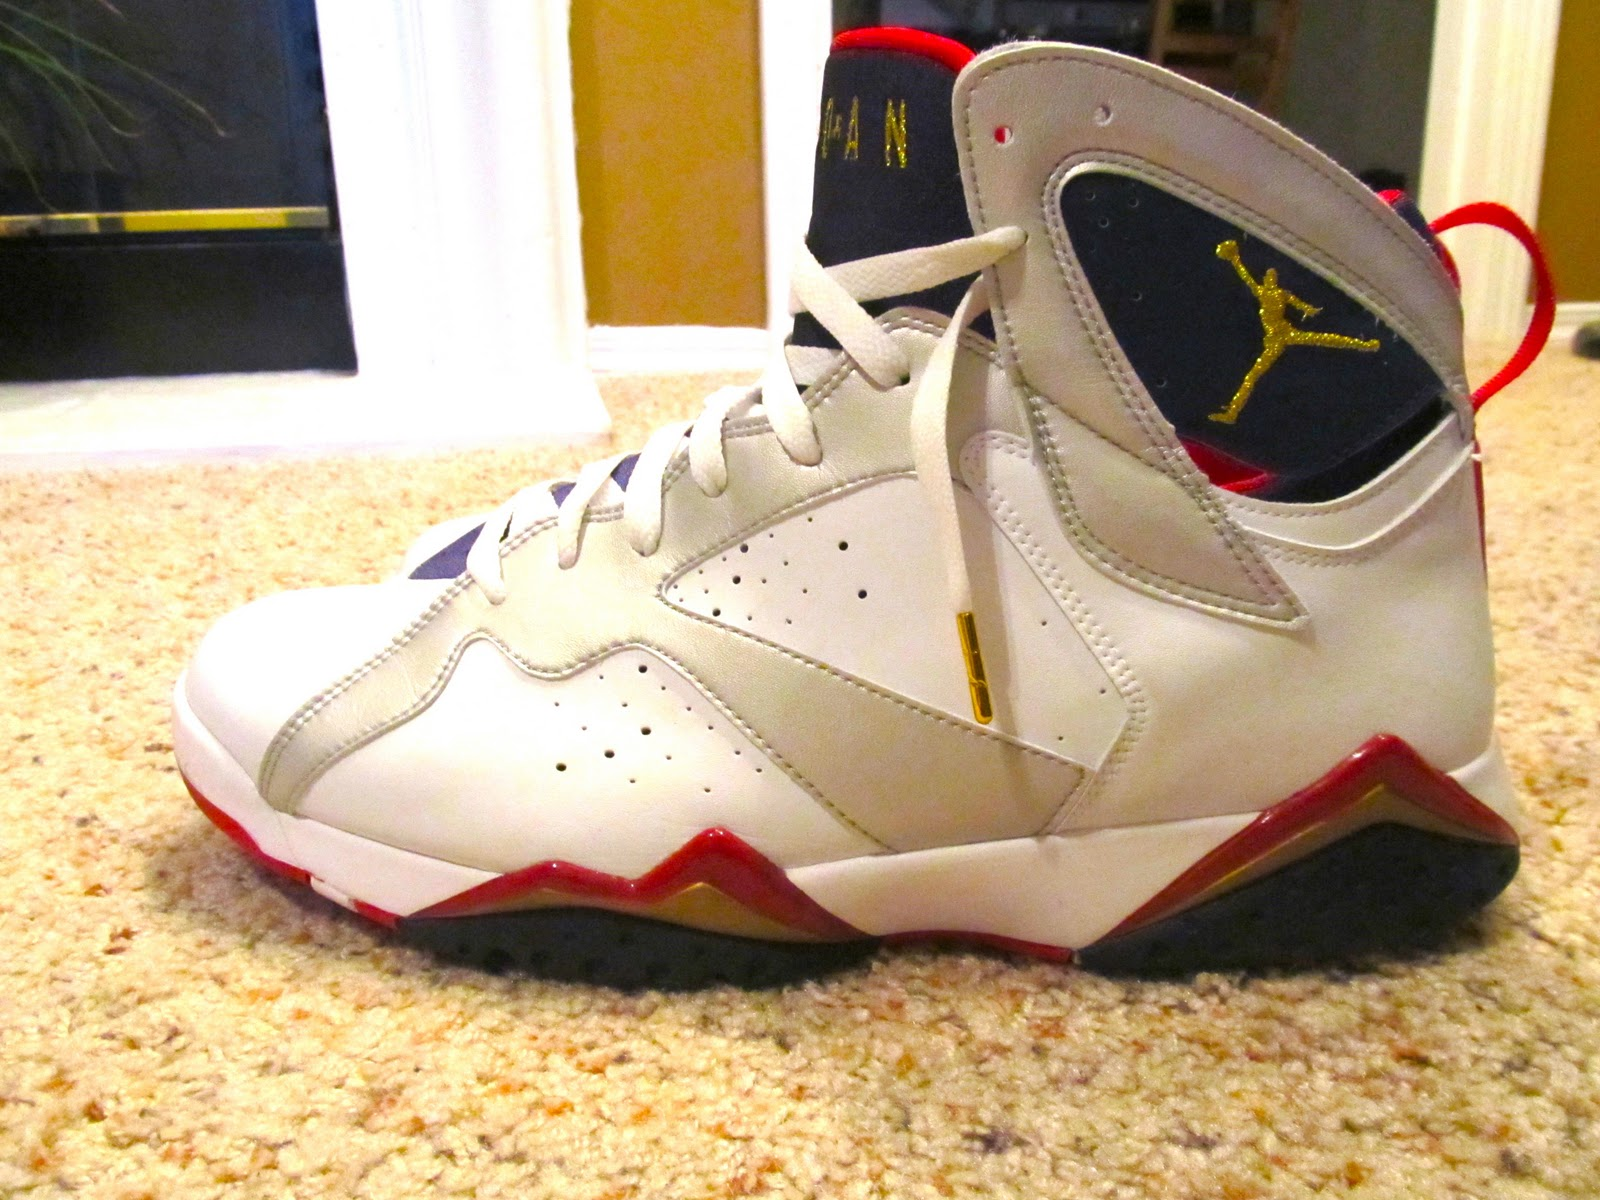 474e5ffc94d These are truly adored by Jordan fanatics to this day